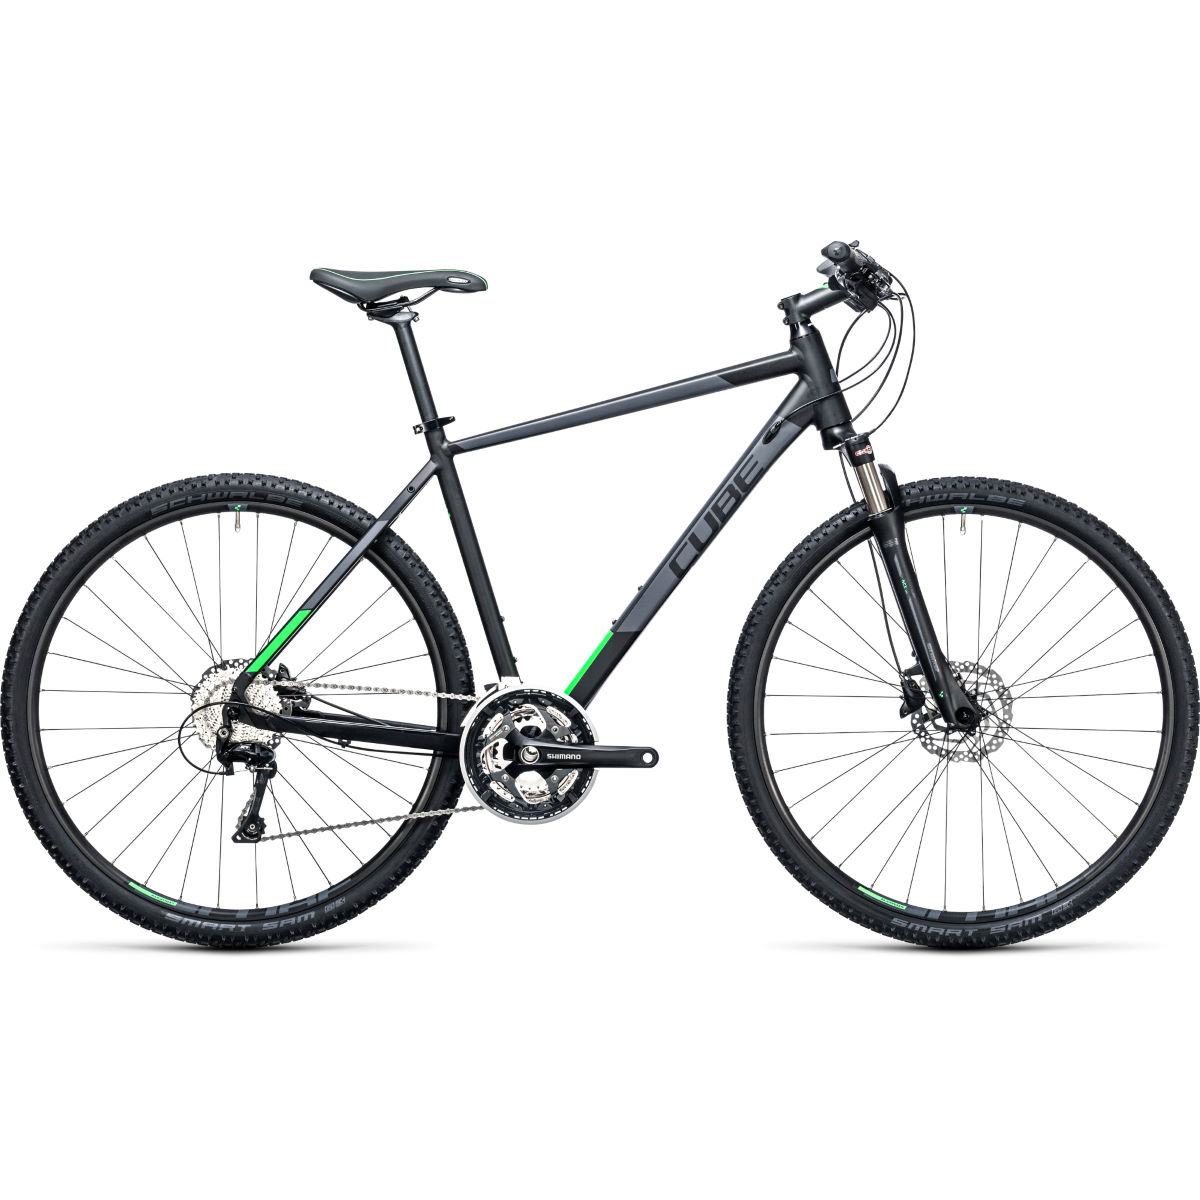 Vélo Cube Cross City (2017) - 50cm Stock Bike Noir/Vert